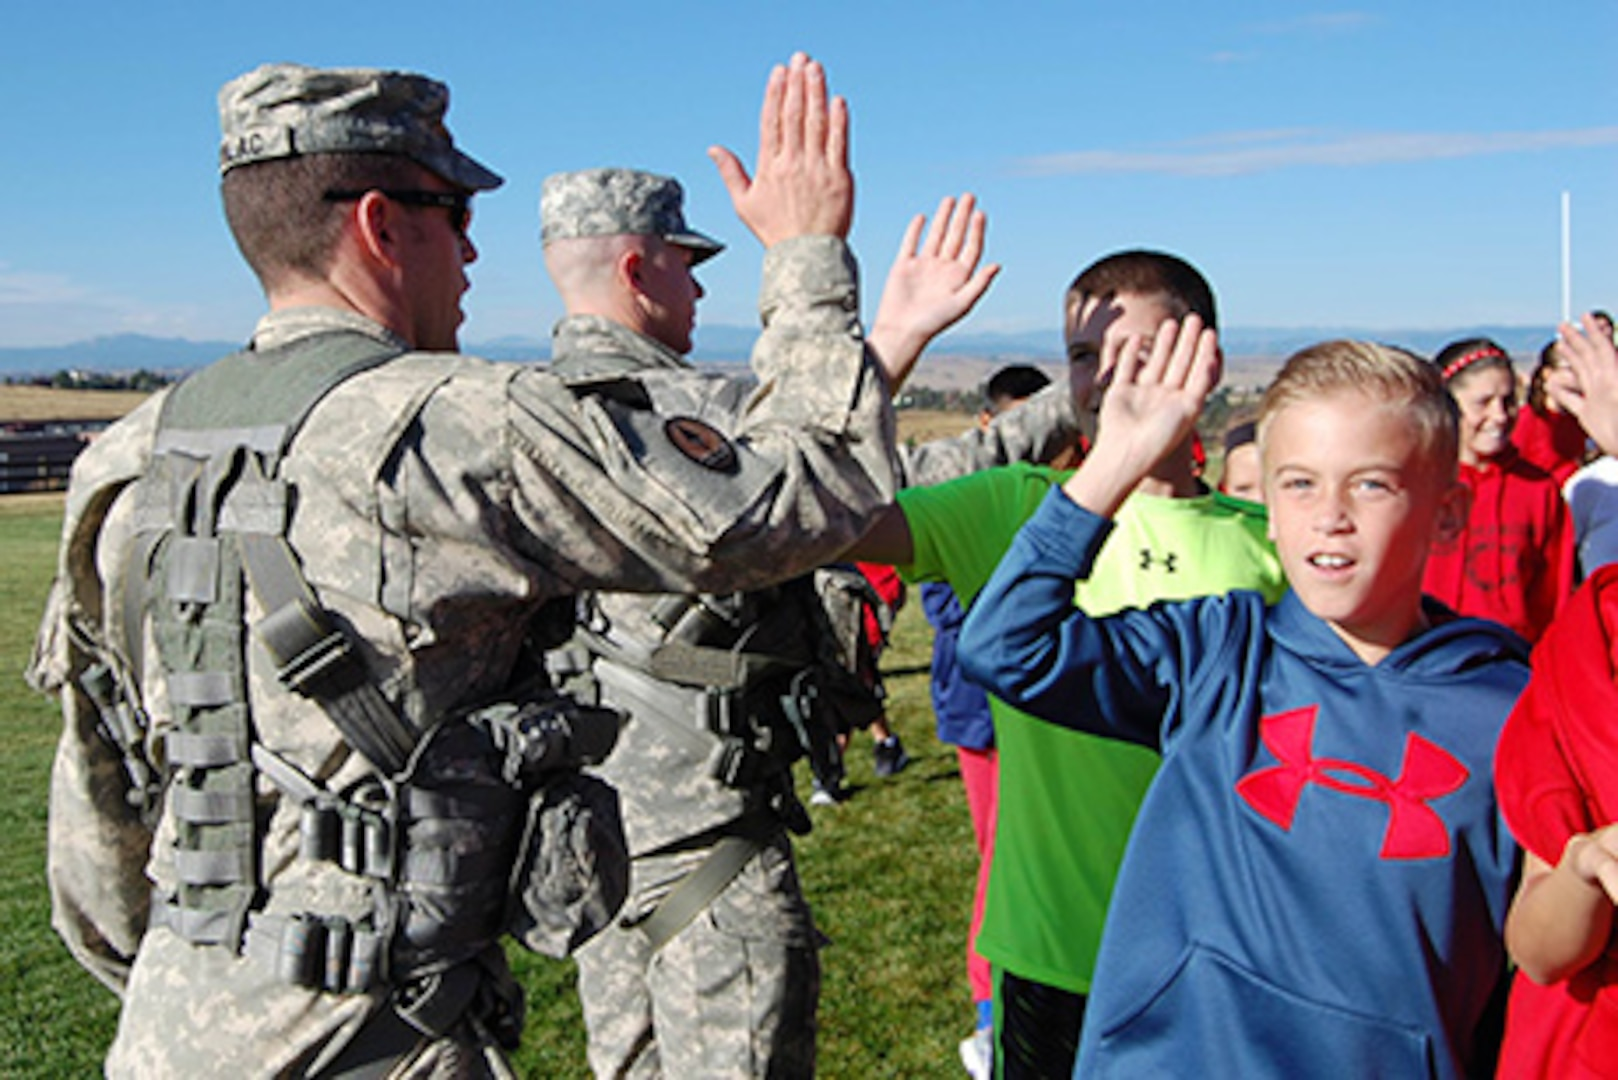 Chief Warrant Officer 2 Marc Kudlac, UH-60 pilot, and Sgt. Sam Groff, UH-60 crew chief, Colorado Army National Guard, high-five students at Cimarron Middle School during a Red Ribbon Week school visit. The Colorado National Guard's Joint Counterdrug Task Force conducts almost a hundred visits like this over the course of each year in an effort to inspire kids in Colorado to stay drug-free.